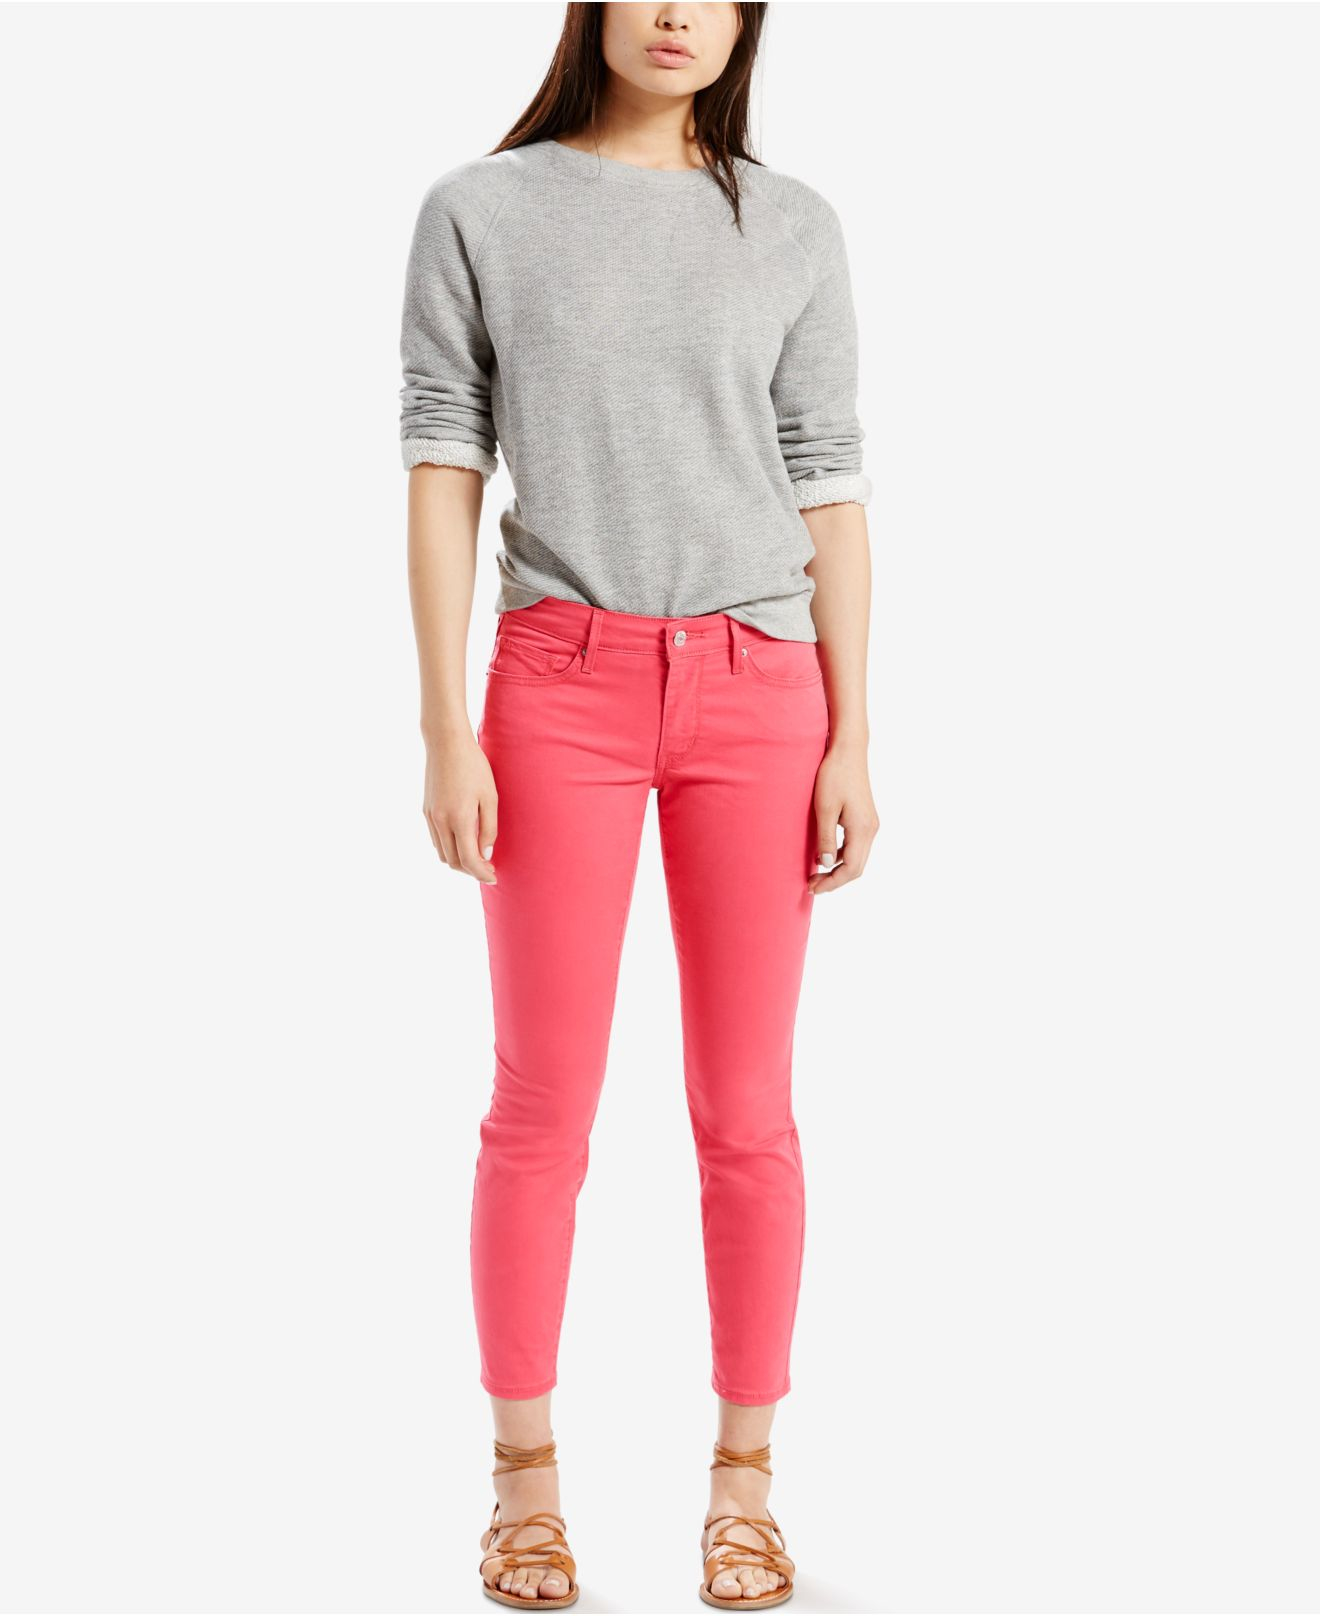 Levi's ® 711 Skinny Ankle Jeans in Pink (Red)